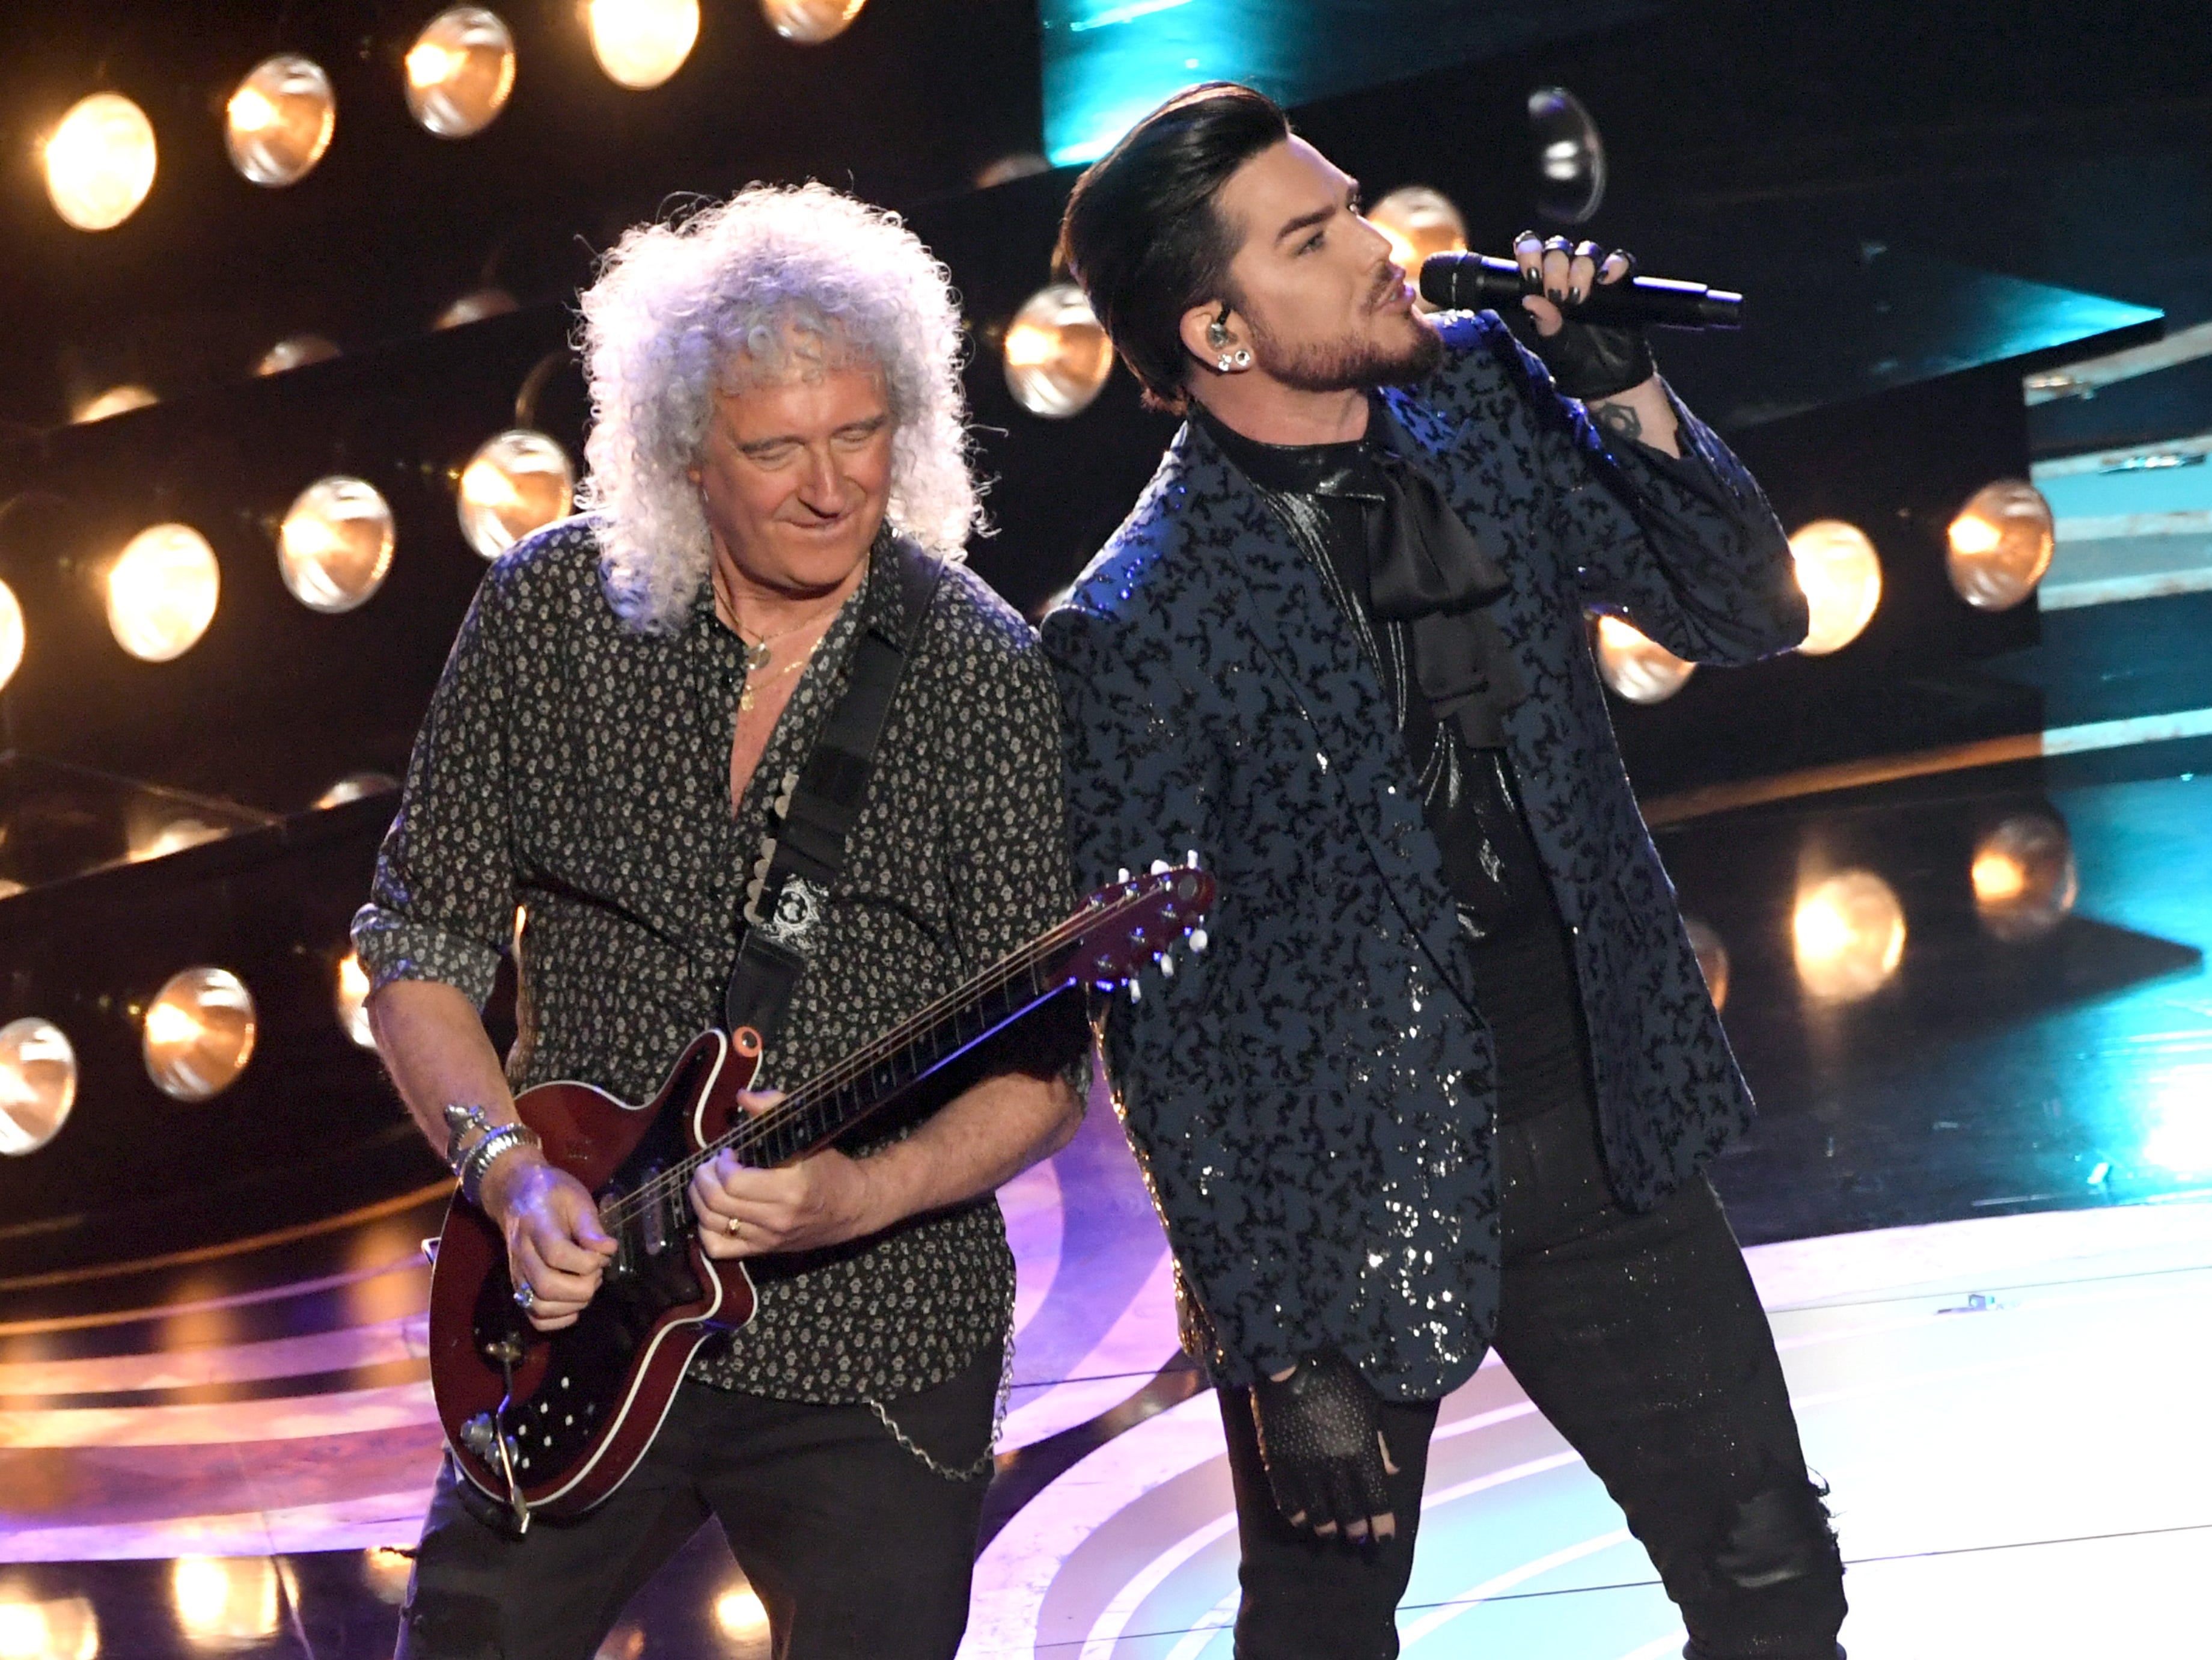 Adam Lambert (L) and Brian May of Queen perform onstage during the 91st Annual Academy Awards.